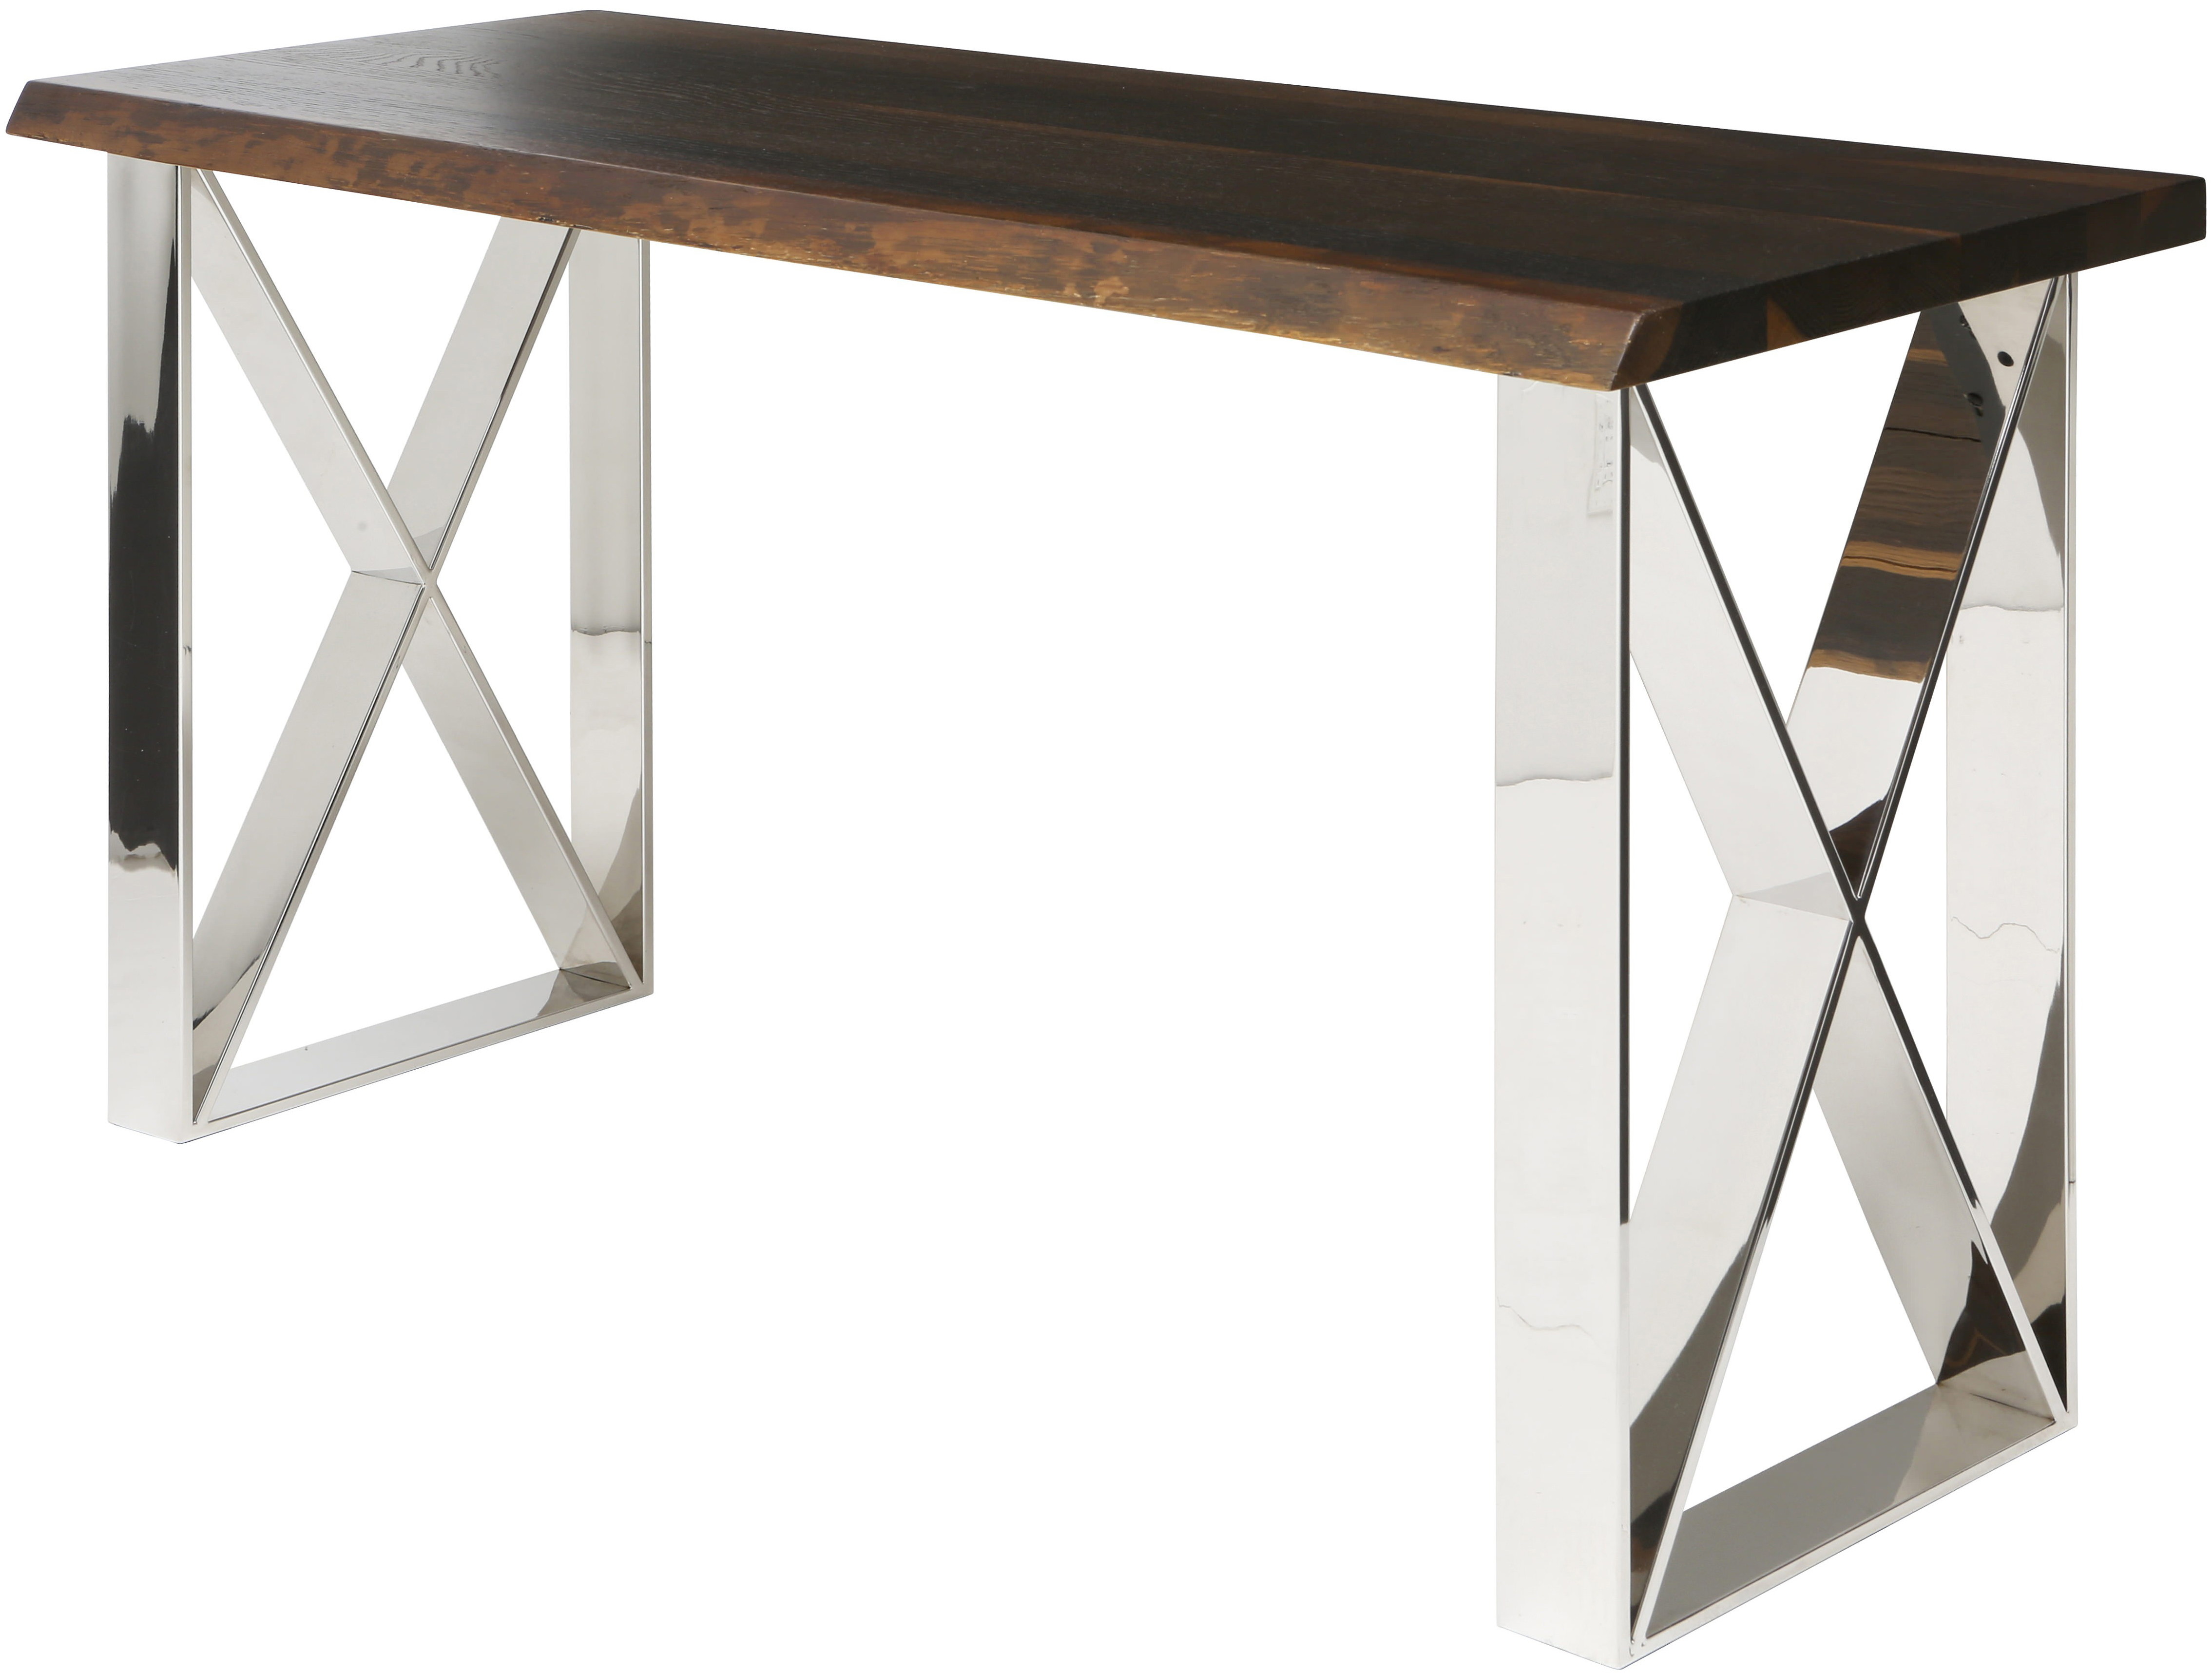 the aix console table made with seared oak and polished stainless steel